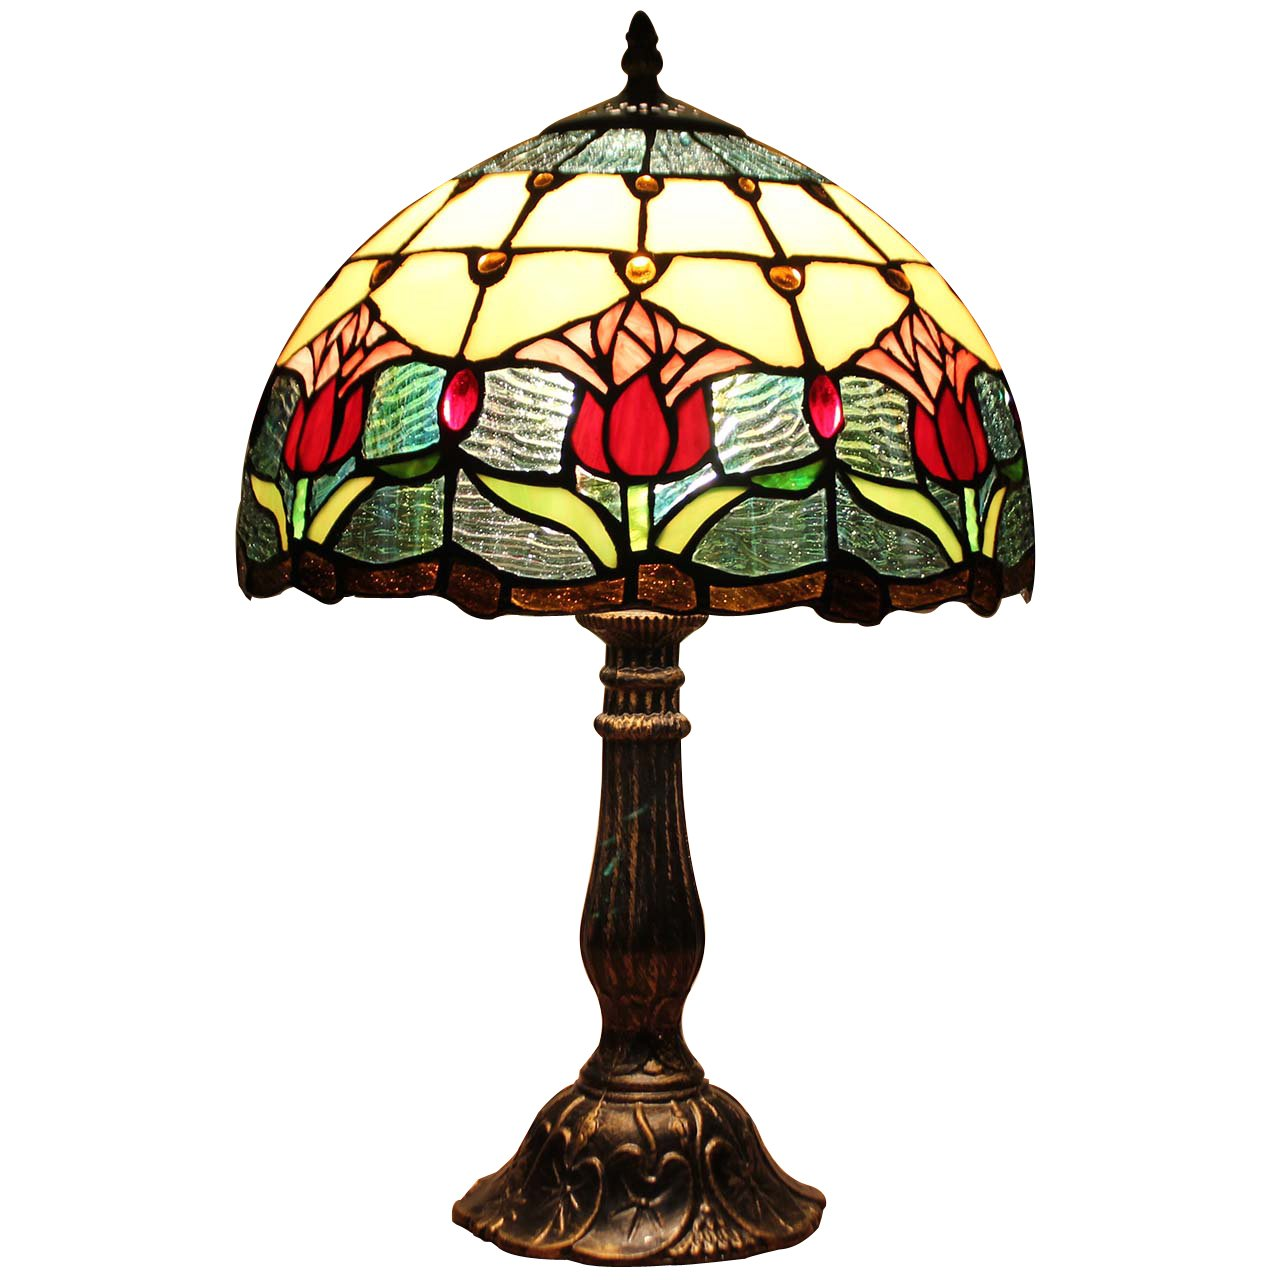 Bieye L10639 Tulip Flower Tiffany Style Stained Glass Table Lamp Night Light with 12 inches Wide Lampshade Metal Base for Bedside Bedroom Living Room, 18 inches Tall